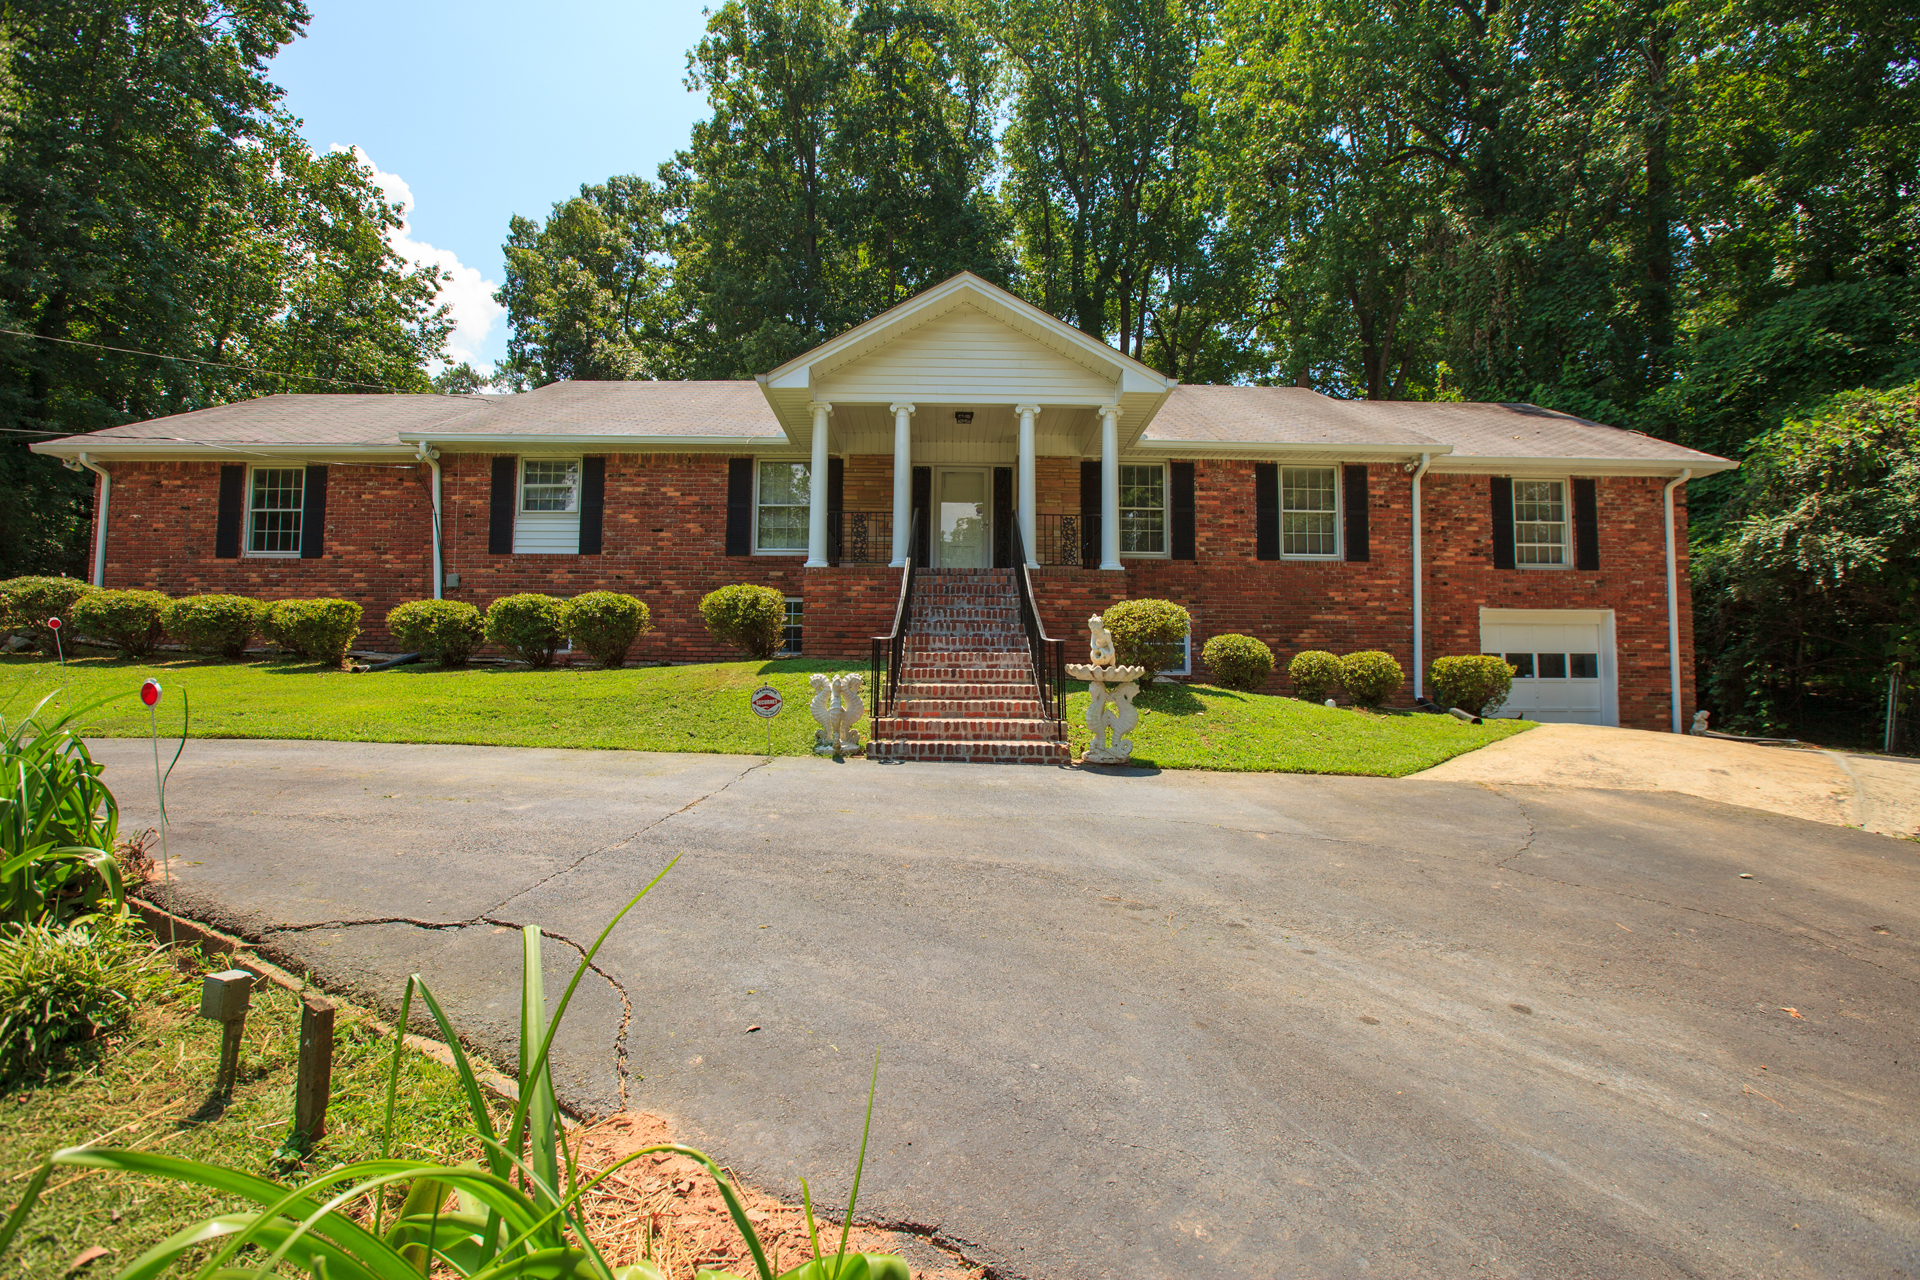 Headland Drive 6 Bedroom Fully Furnished Home 15 Minutes To The Airport Downtown Atl With